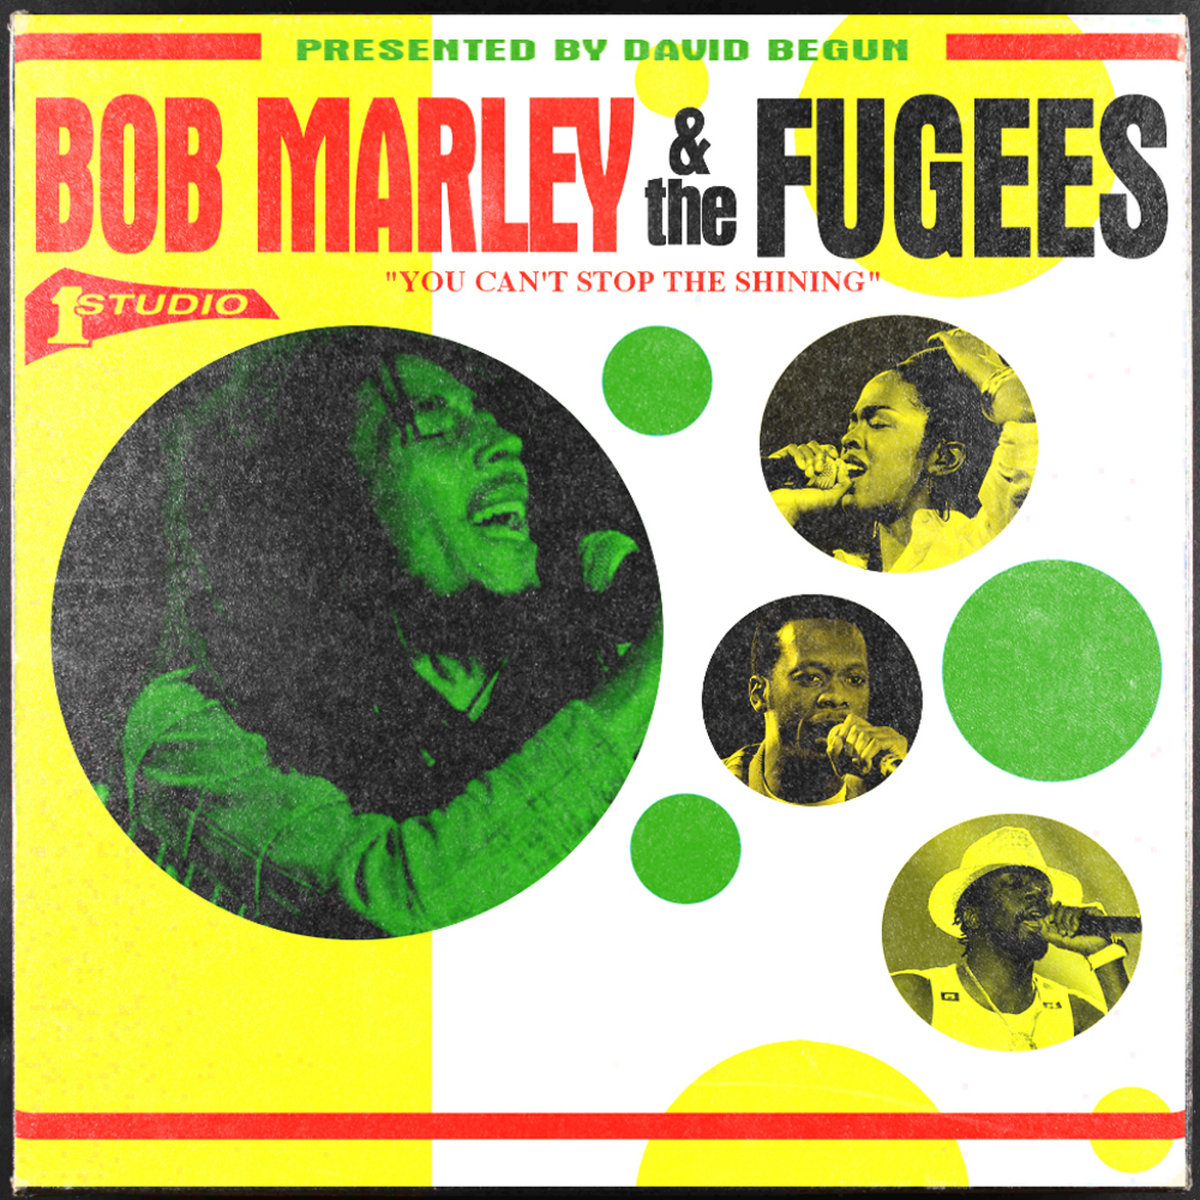 Bob Marley & The Fugees: You Can't Stop The Shining | David